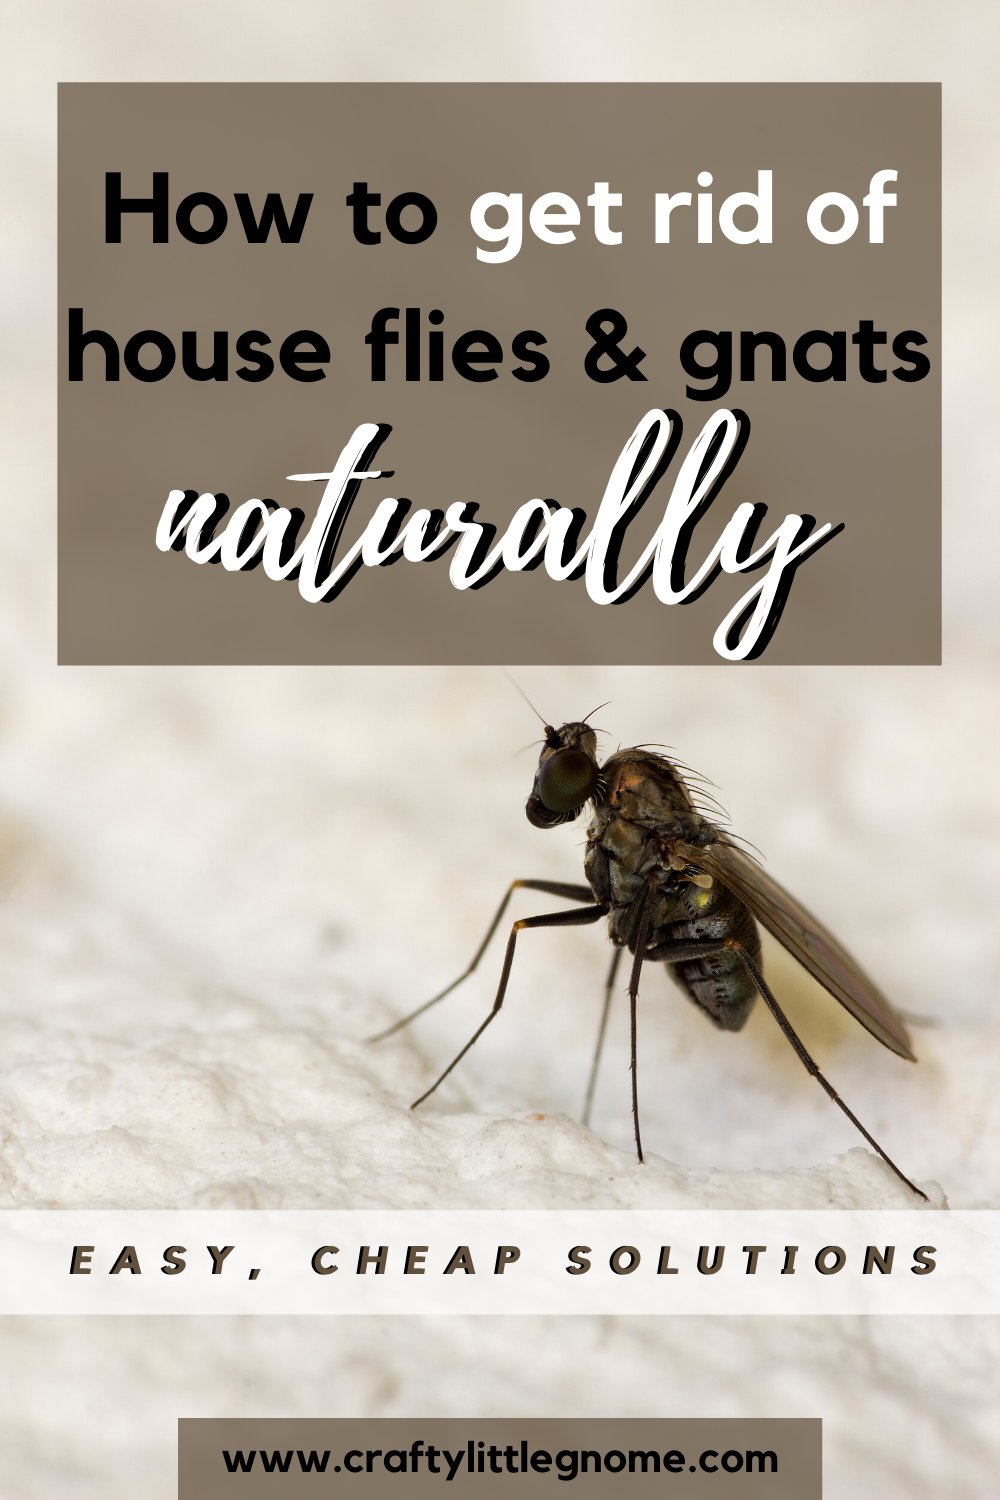 Why Are There Flies In My House All Of A Sudden Crafty Little Gnome Cleaning Hacks Bedroom Get Rid Of Flies Bedroom Organization Diy